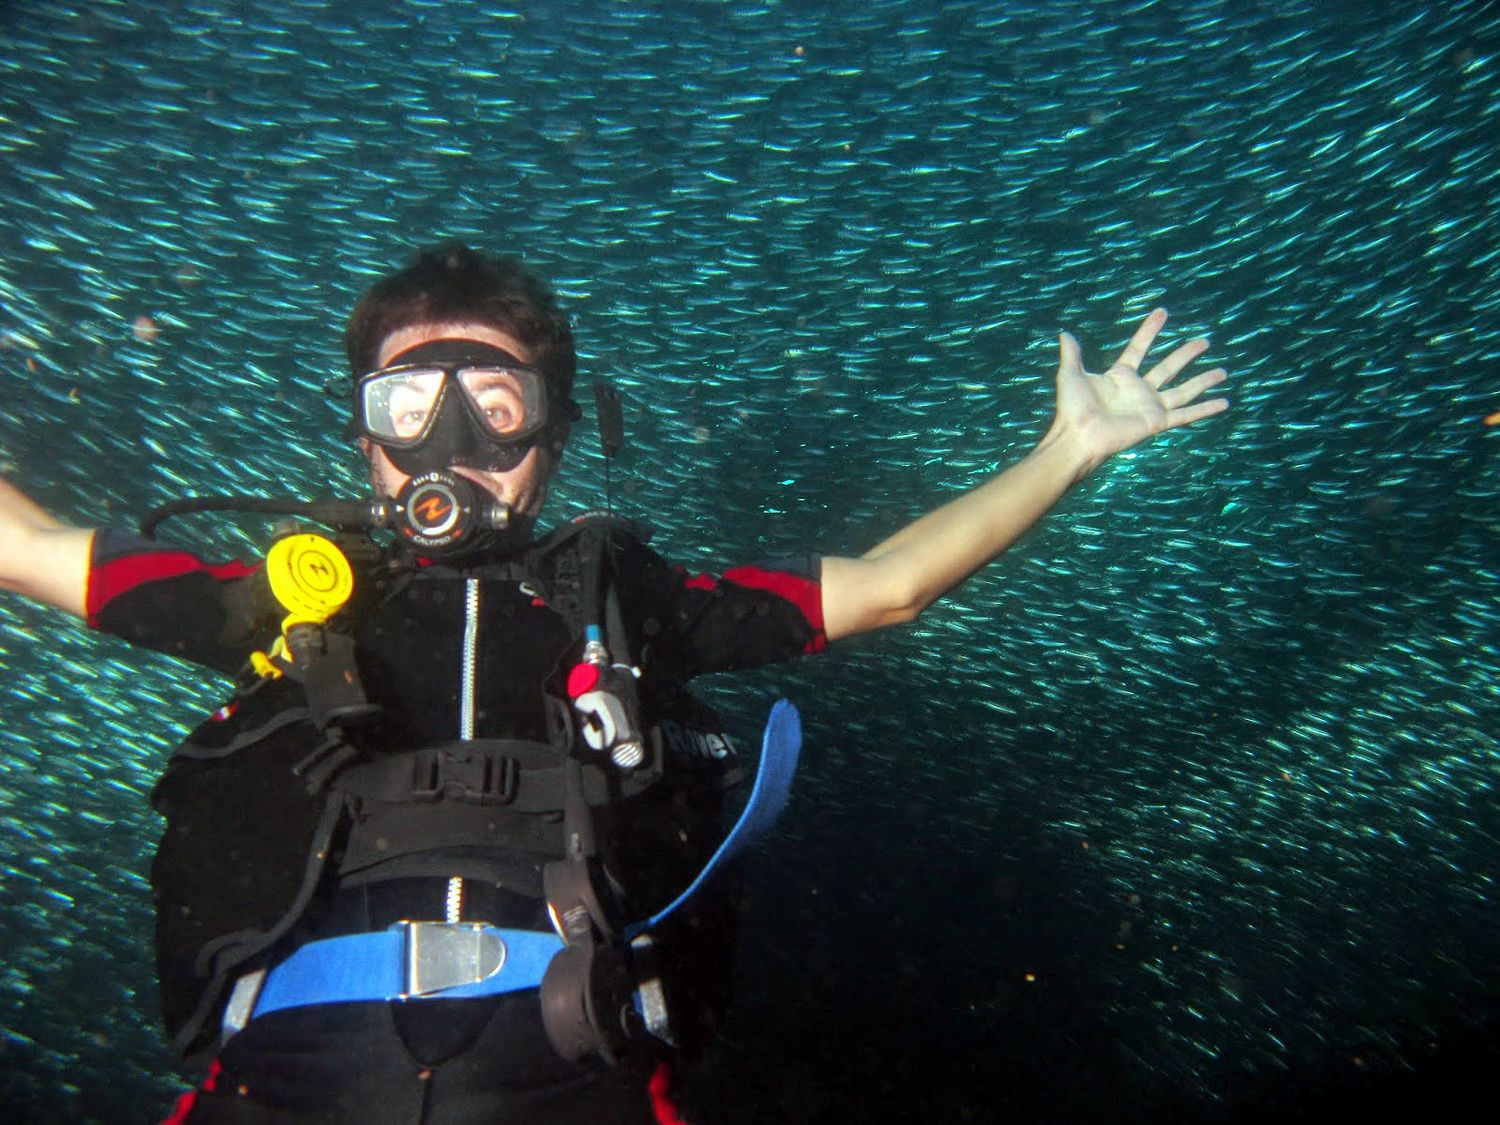 Student Diver surprised by Giant School of Sardines